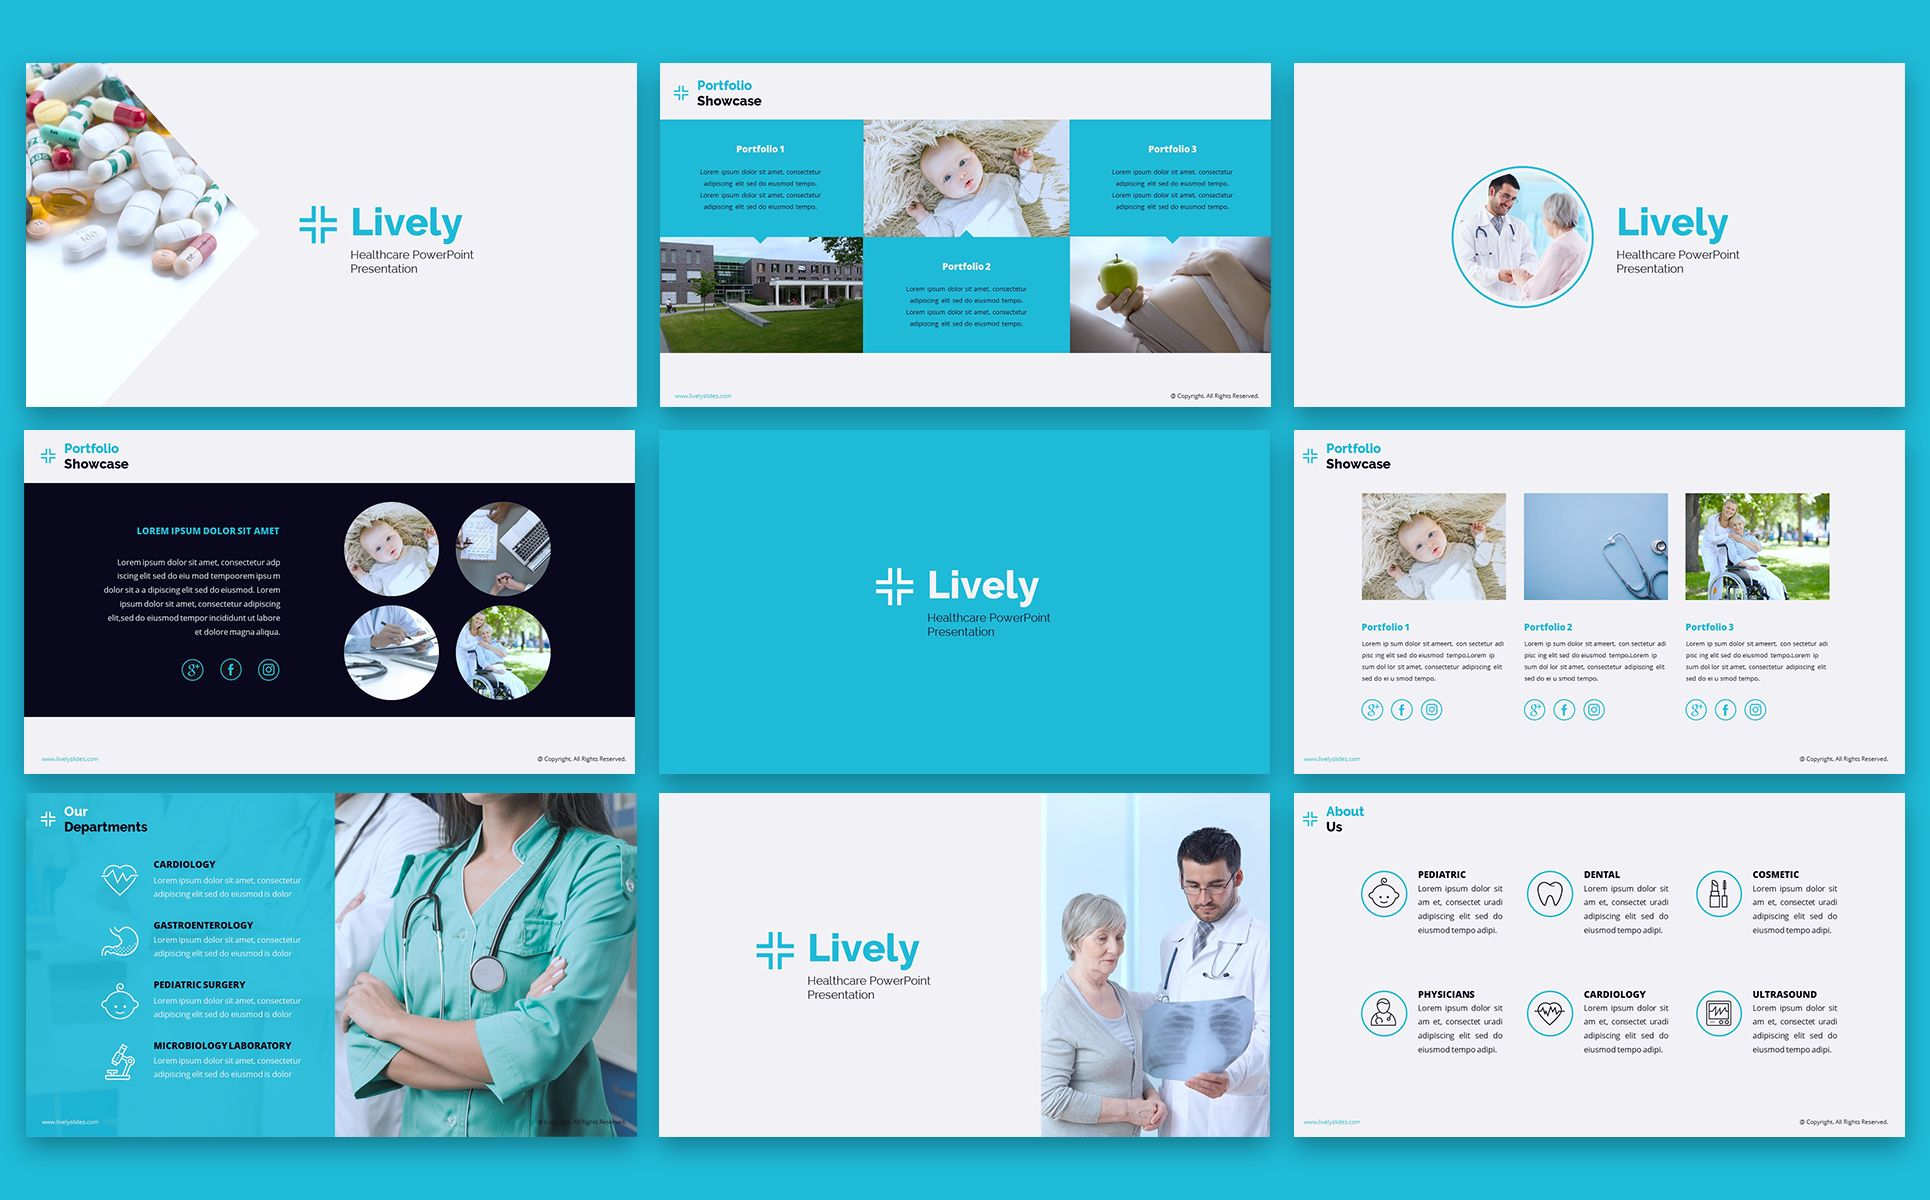 Lively Healthcare Ppt Slides Powerpoint Template 66798 Powerpoint Templates Powerpoint Ppt